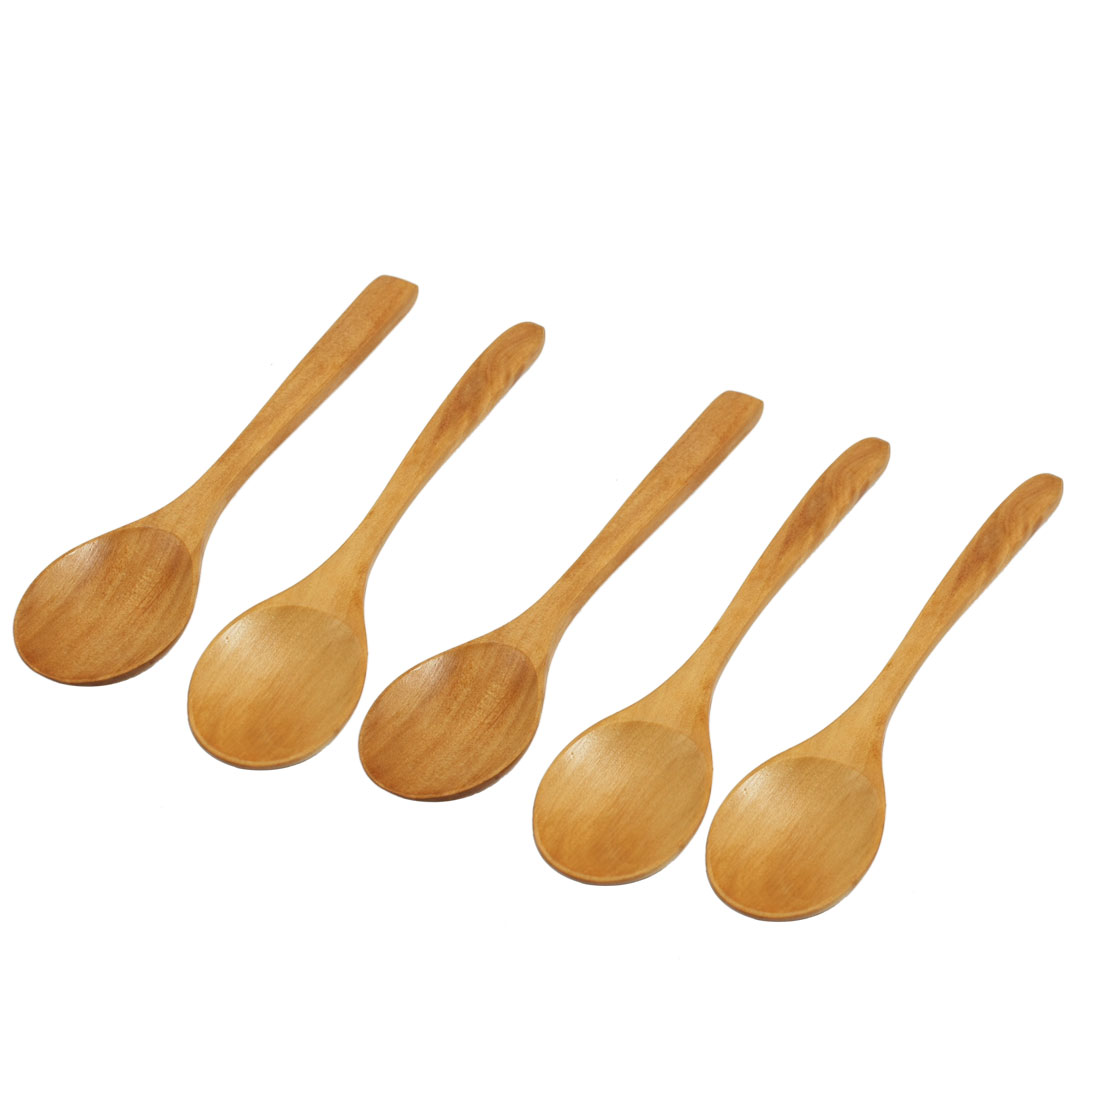 5 x Home Cooking Dinner Tableware Wooden Rice Spoon Ladle Khaki